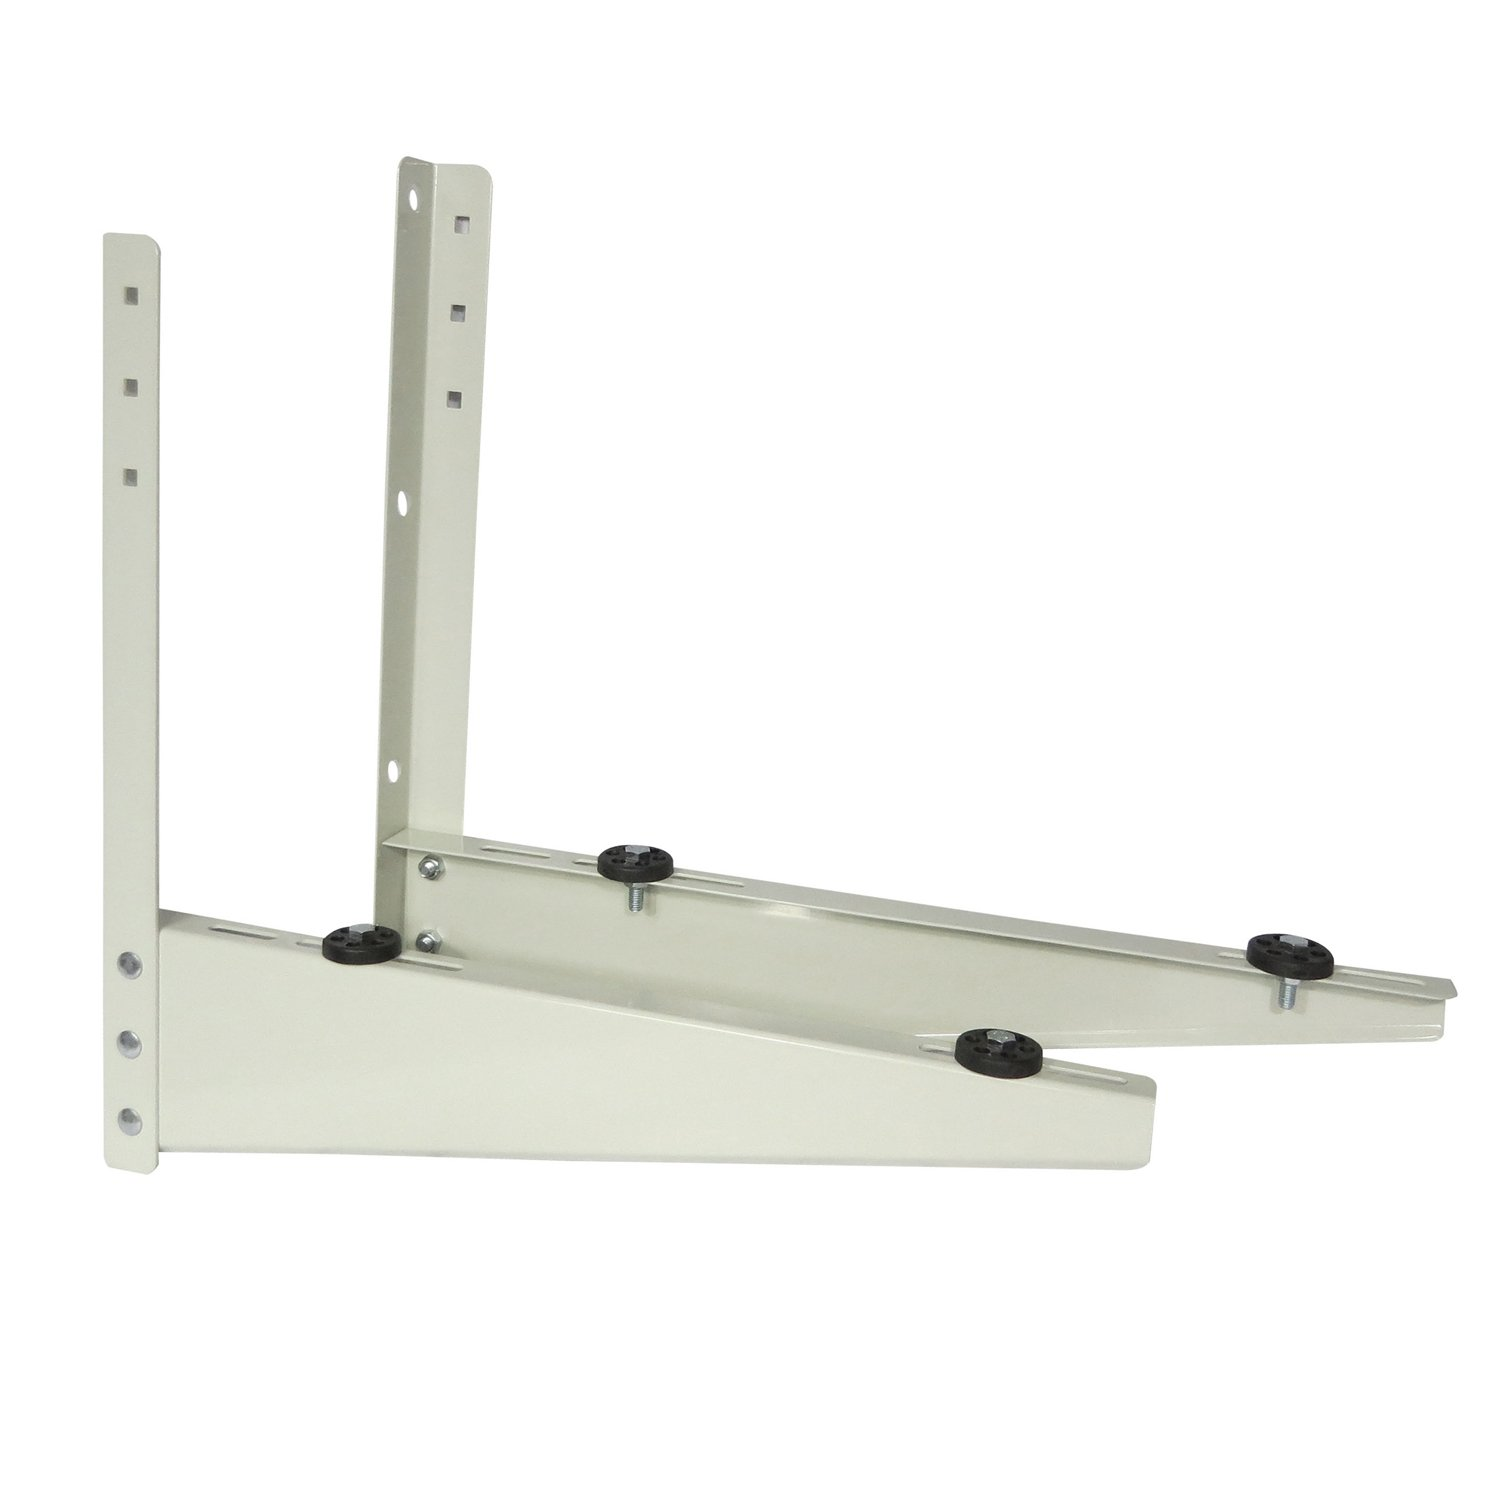 Discount Mini Split Wall Bracket & Ductless Heat Pump Support - Condenser Mounting Rack for Air Conditioner. Painted Steel for Mini Split Systems